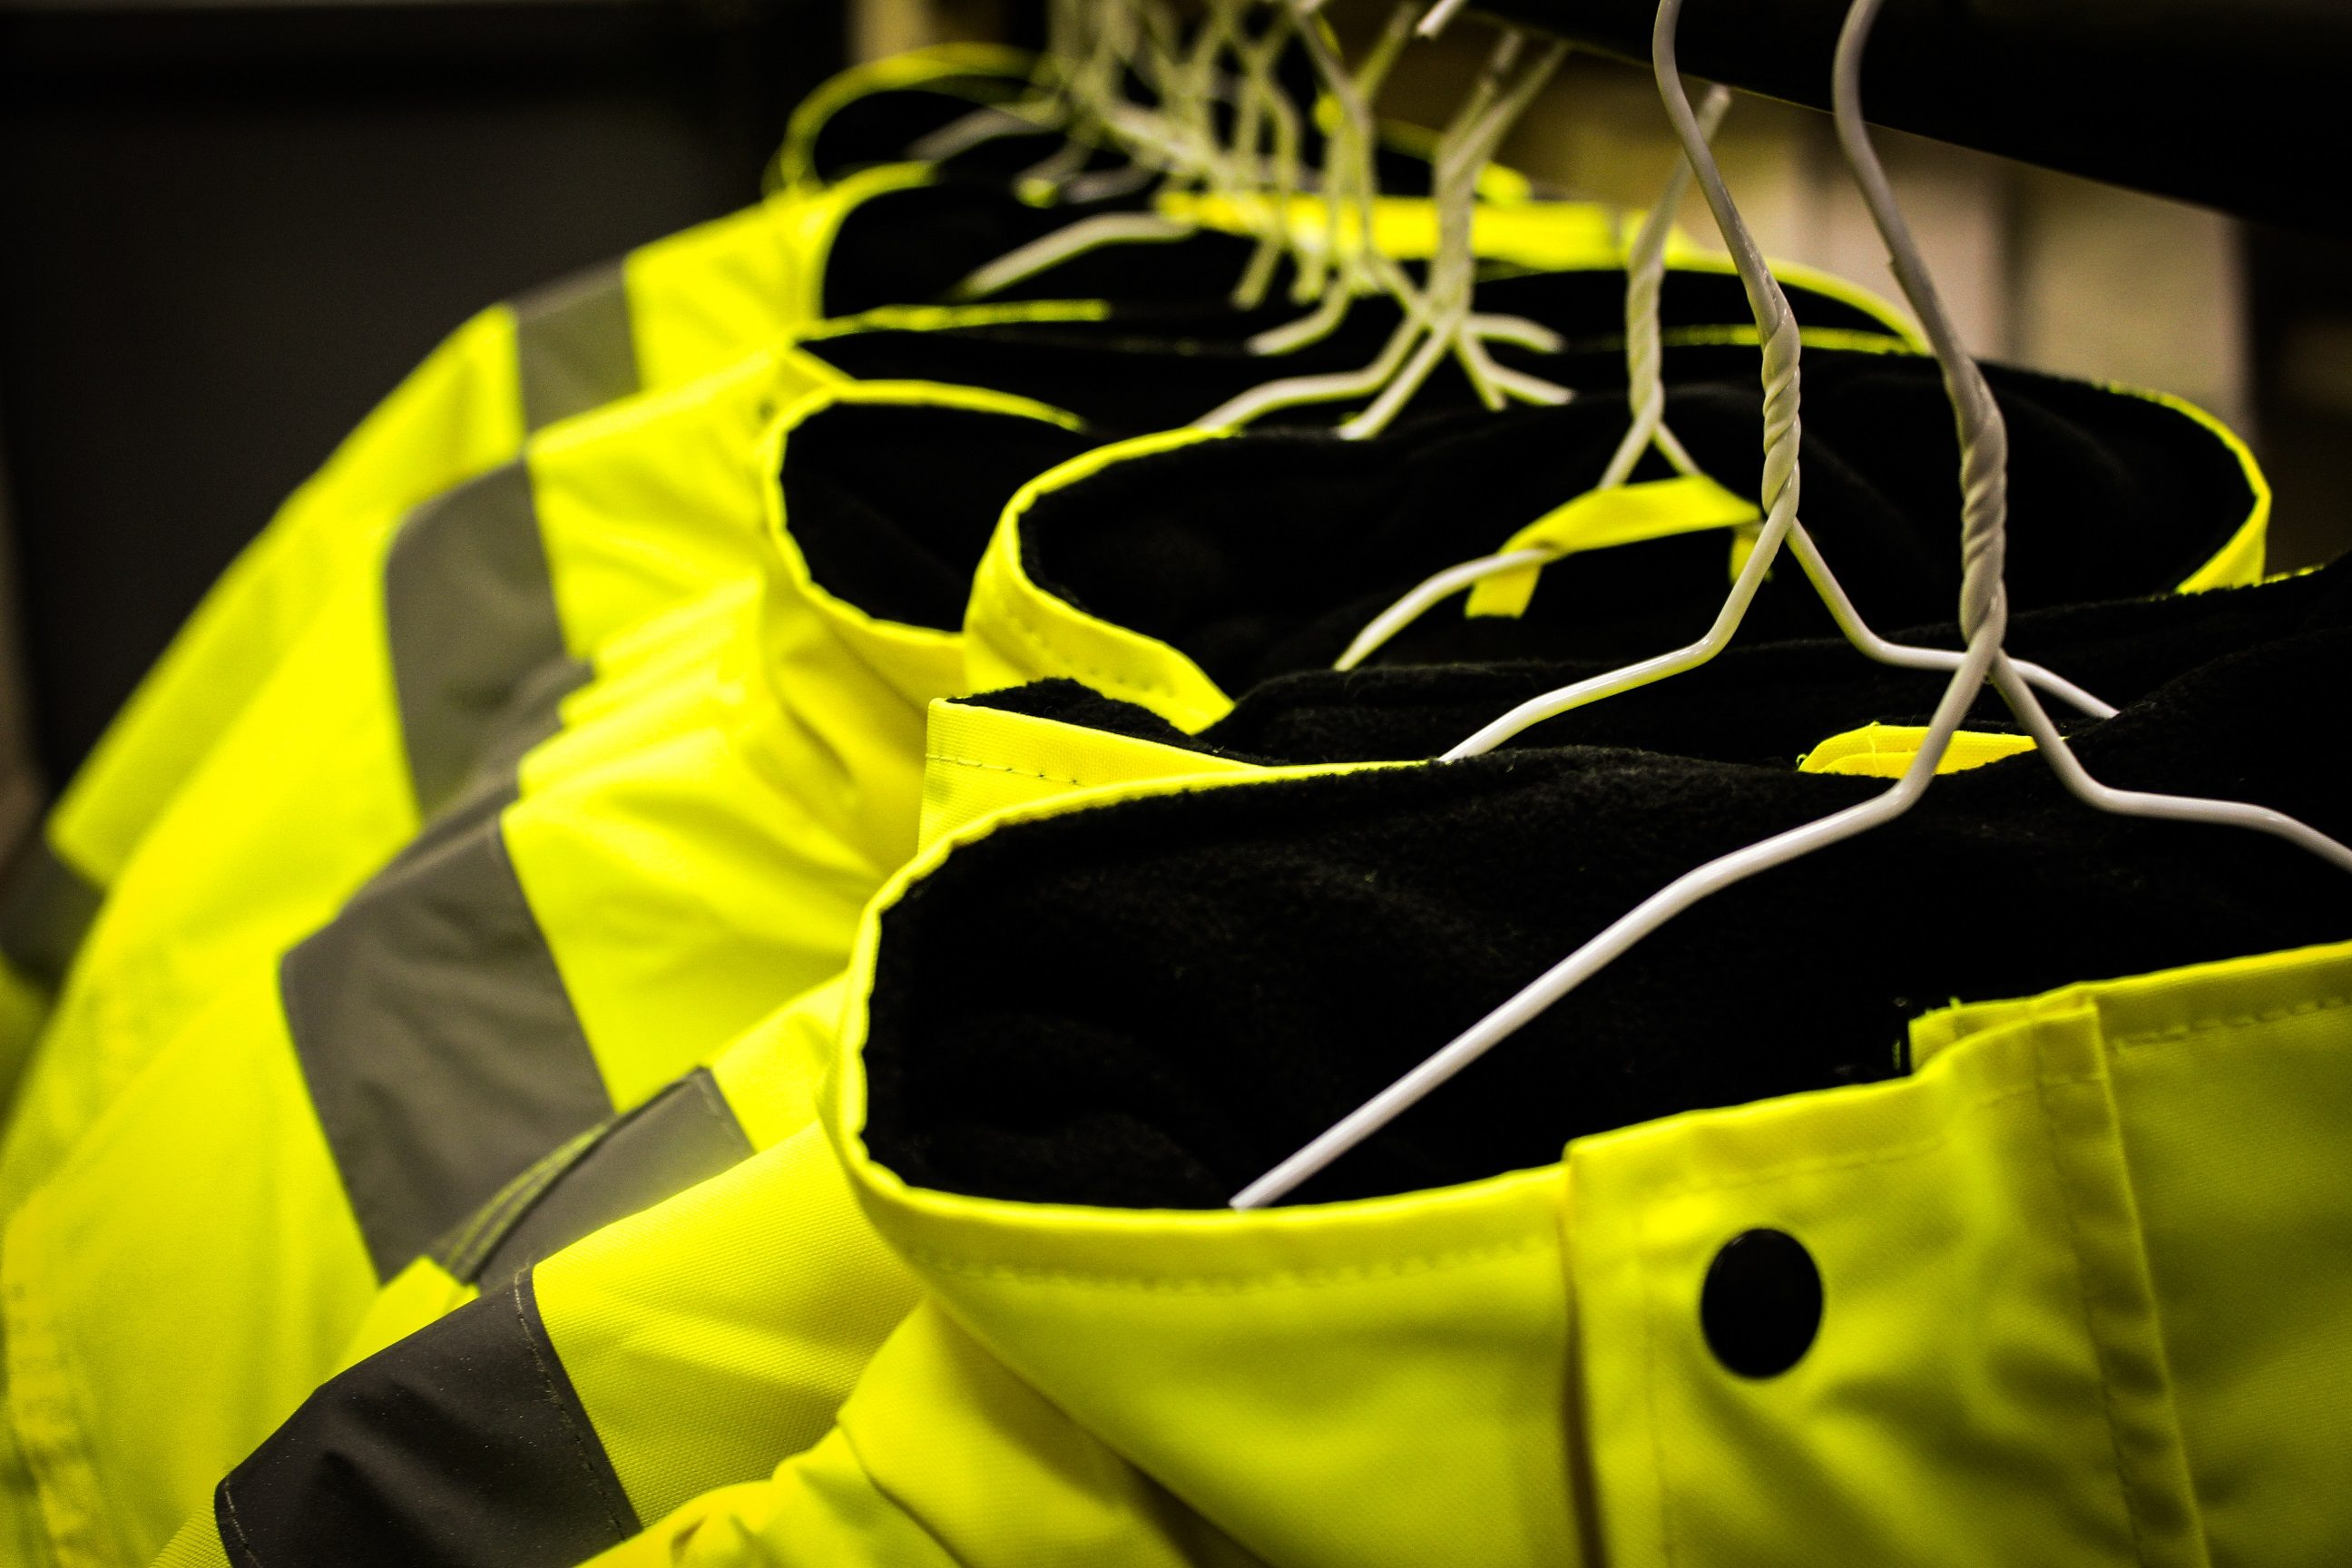 Yellow safety fluorescent jackets hanged up. Multiple jackets.